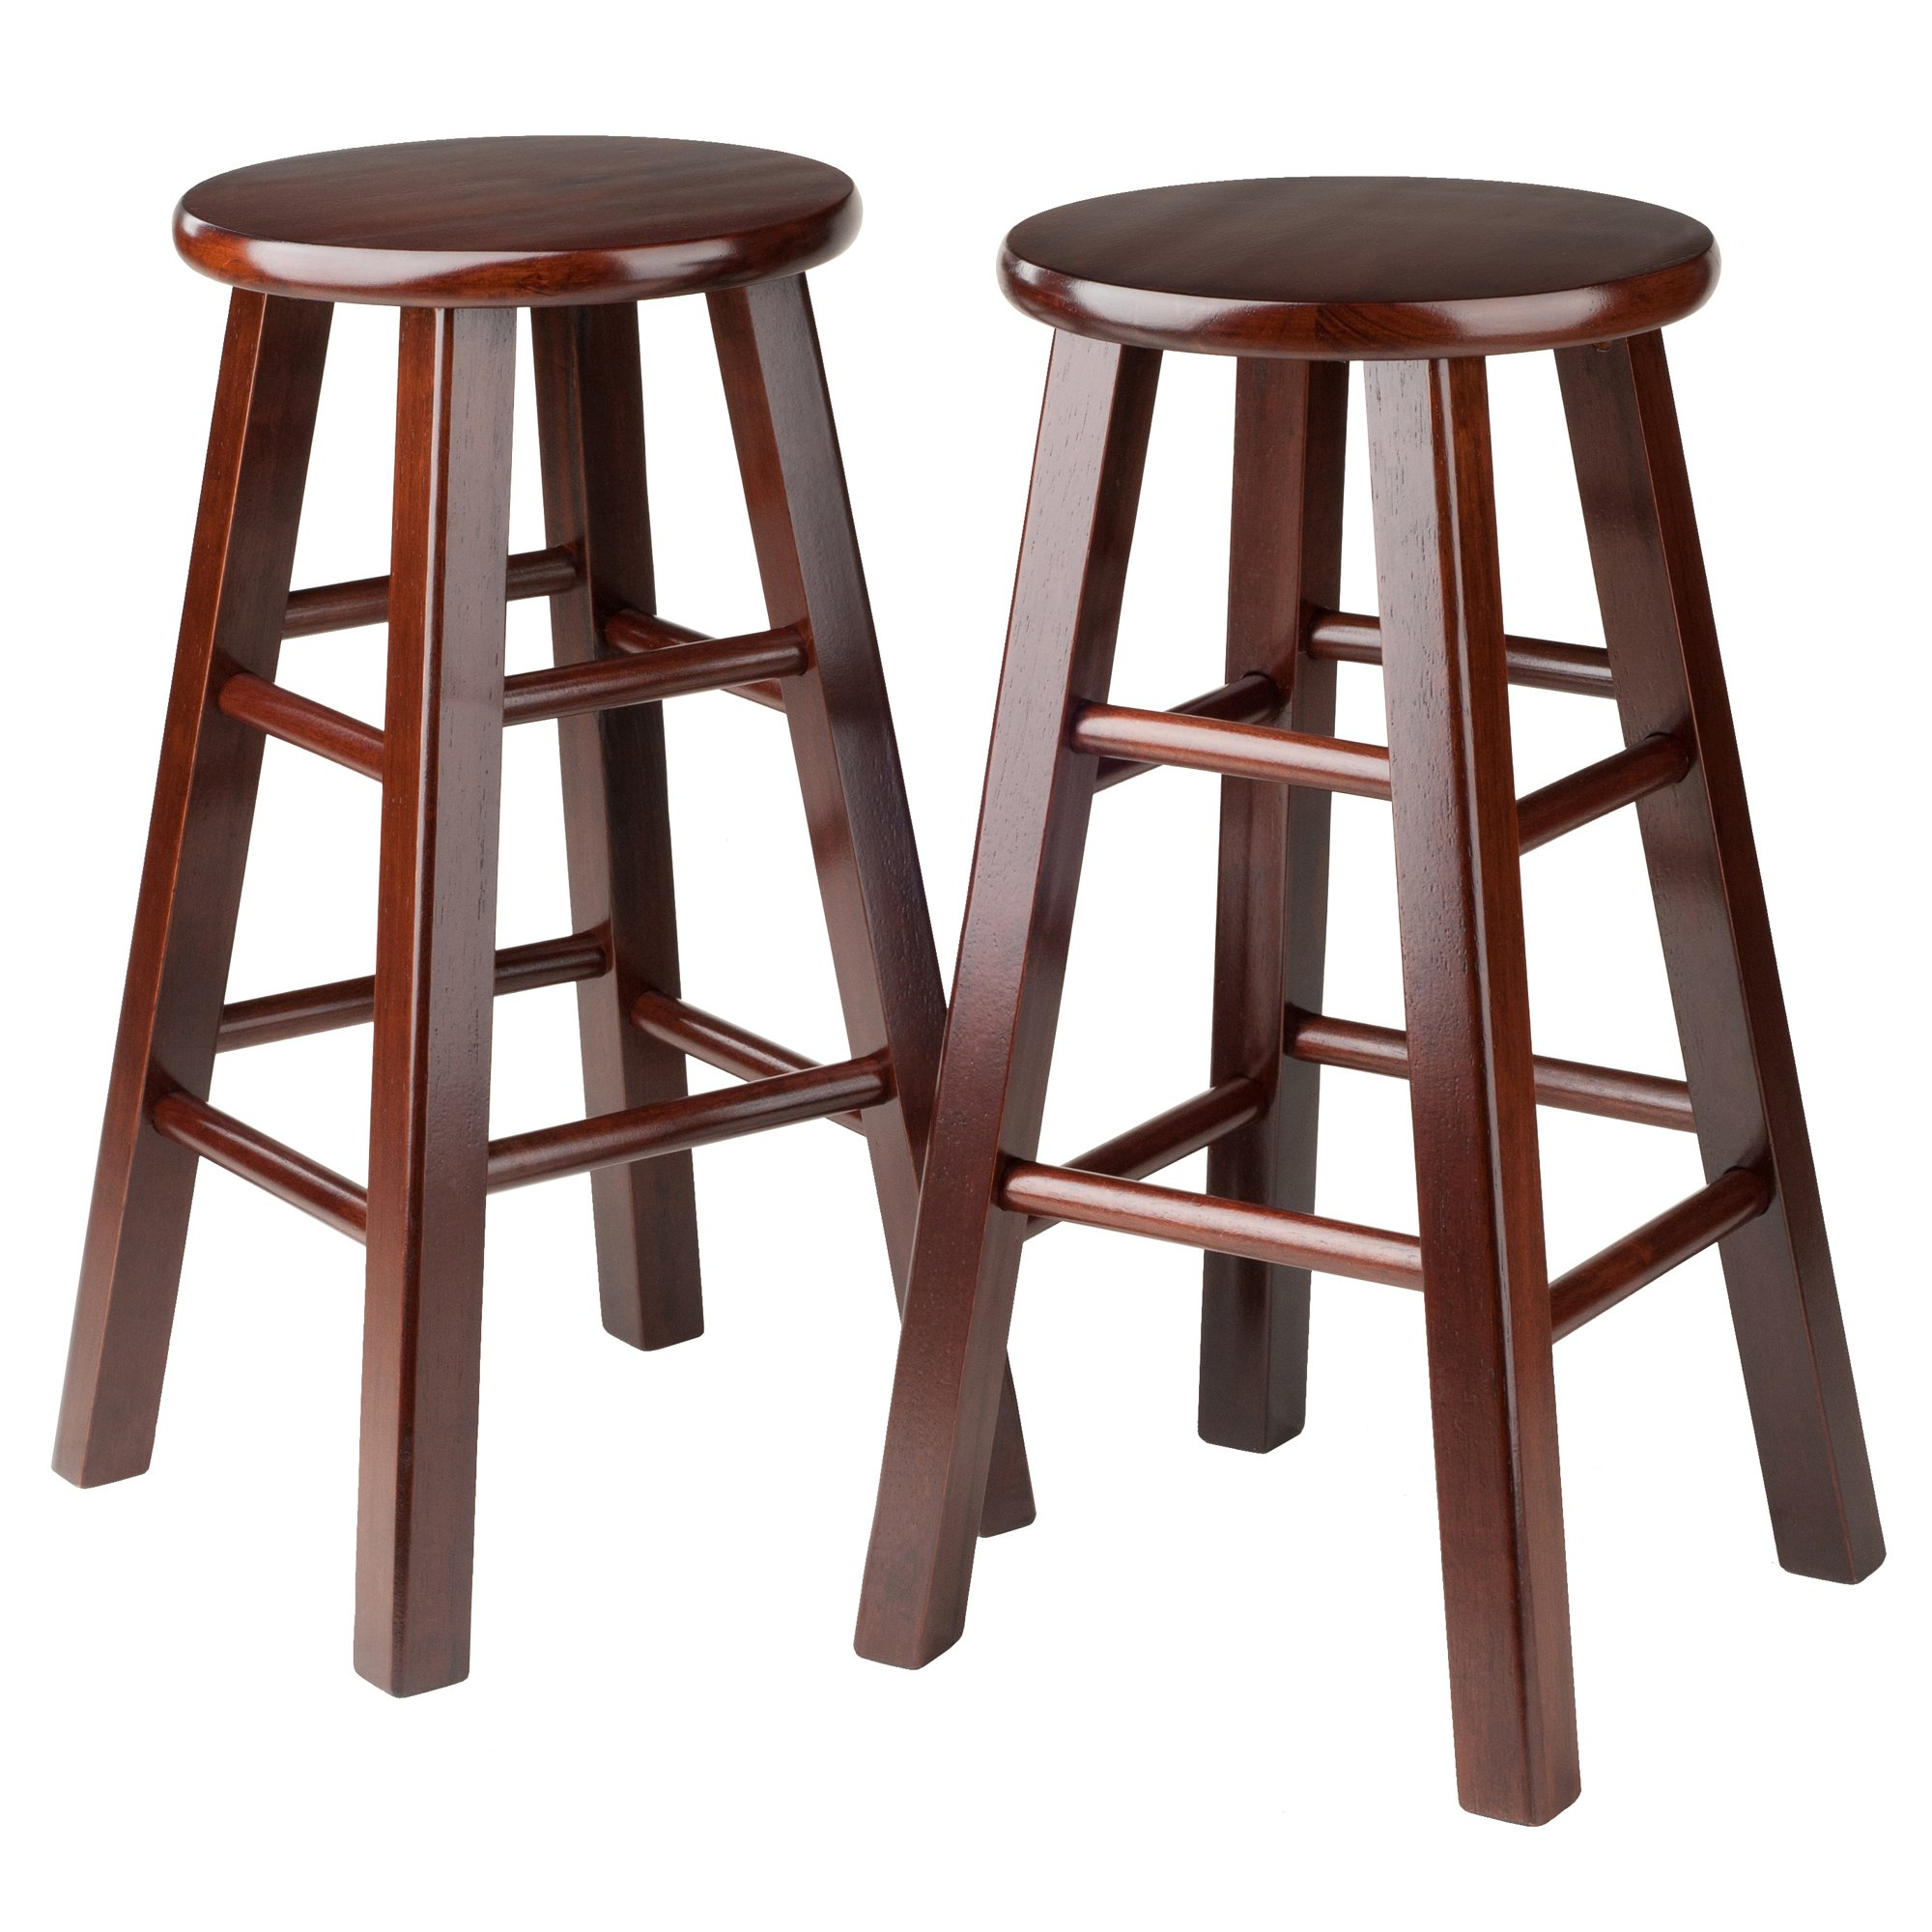 Winsome 94264 Square Leg Counter Stool, Set of 2, 24'', Walnut by Winsome